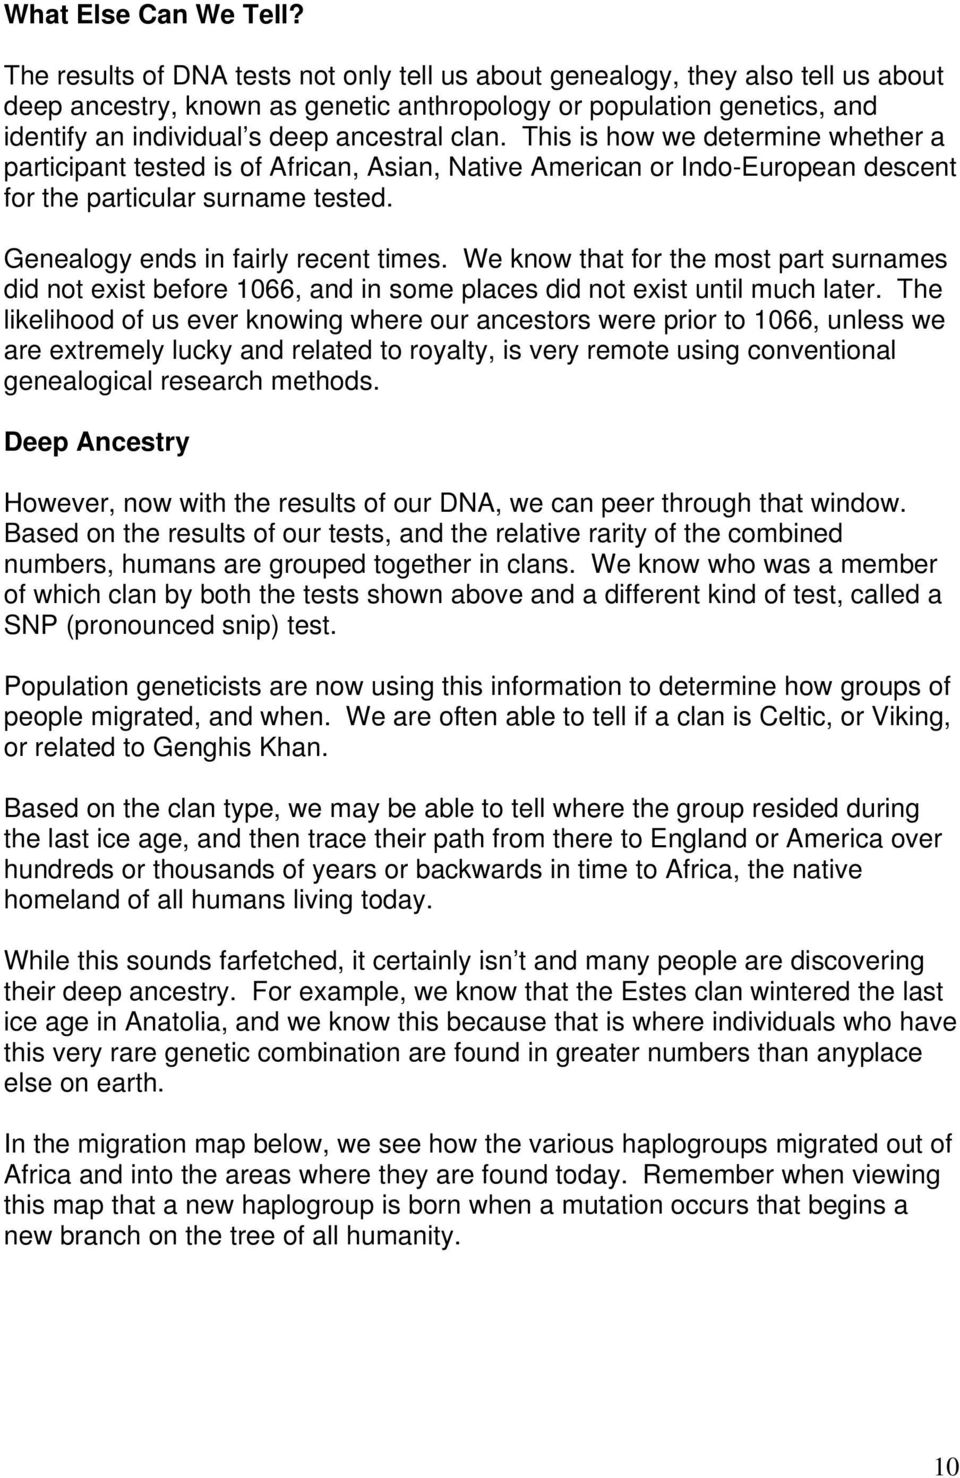 DNA Testing and the Melungeons - PDF